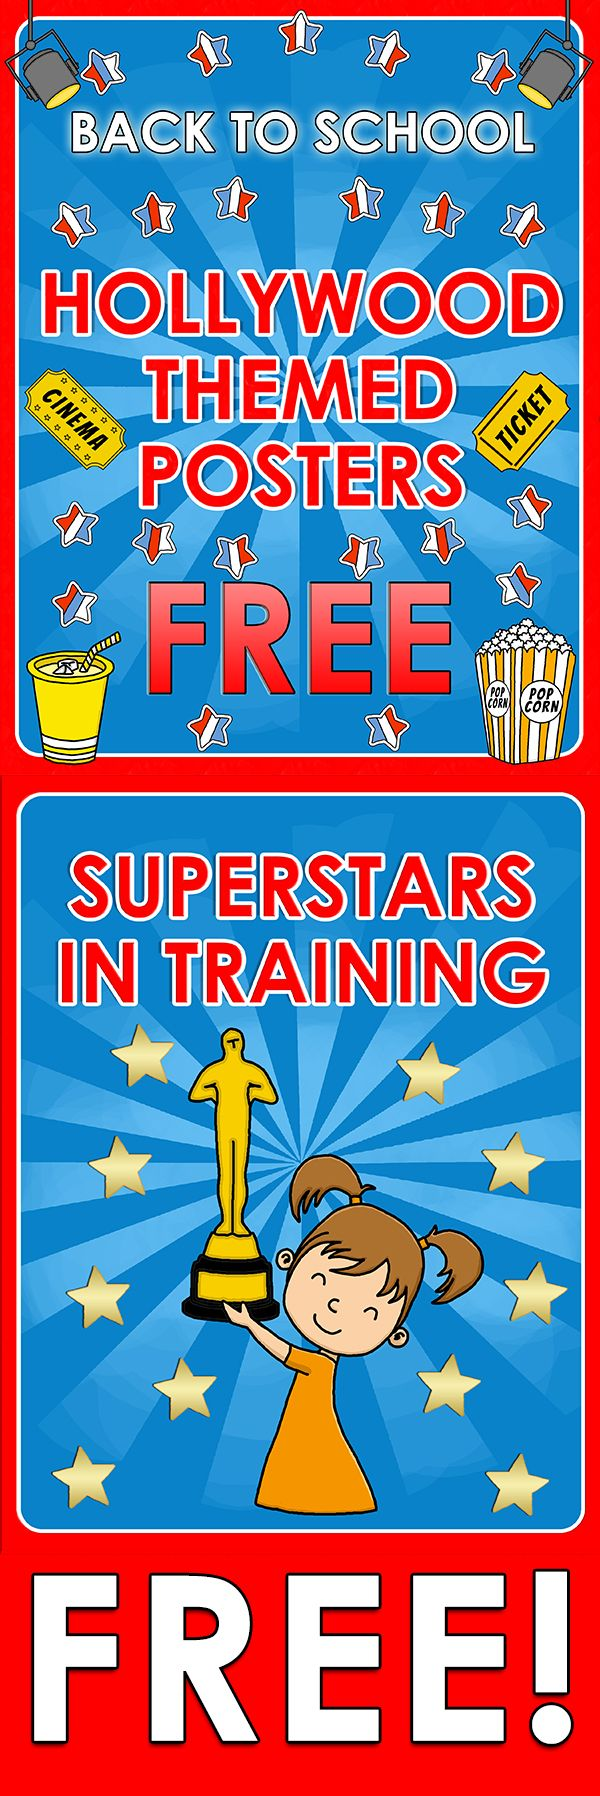 Back to School - Hollywood Themed Posters - FREE  Here you are 4 FREE posters for your Hollywood Themed Classroom!